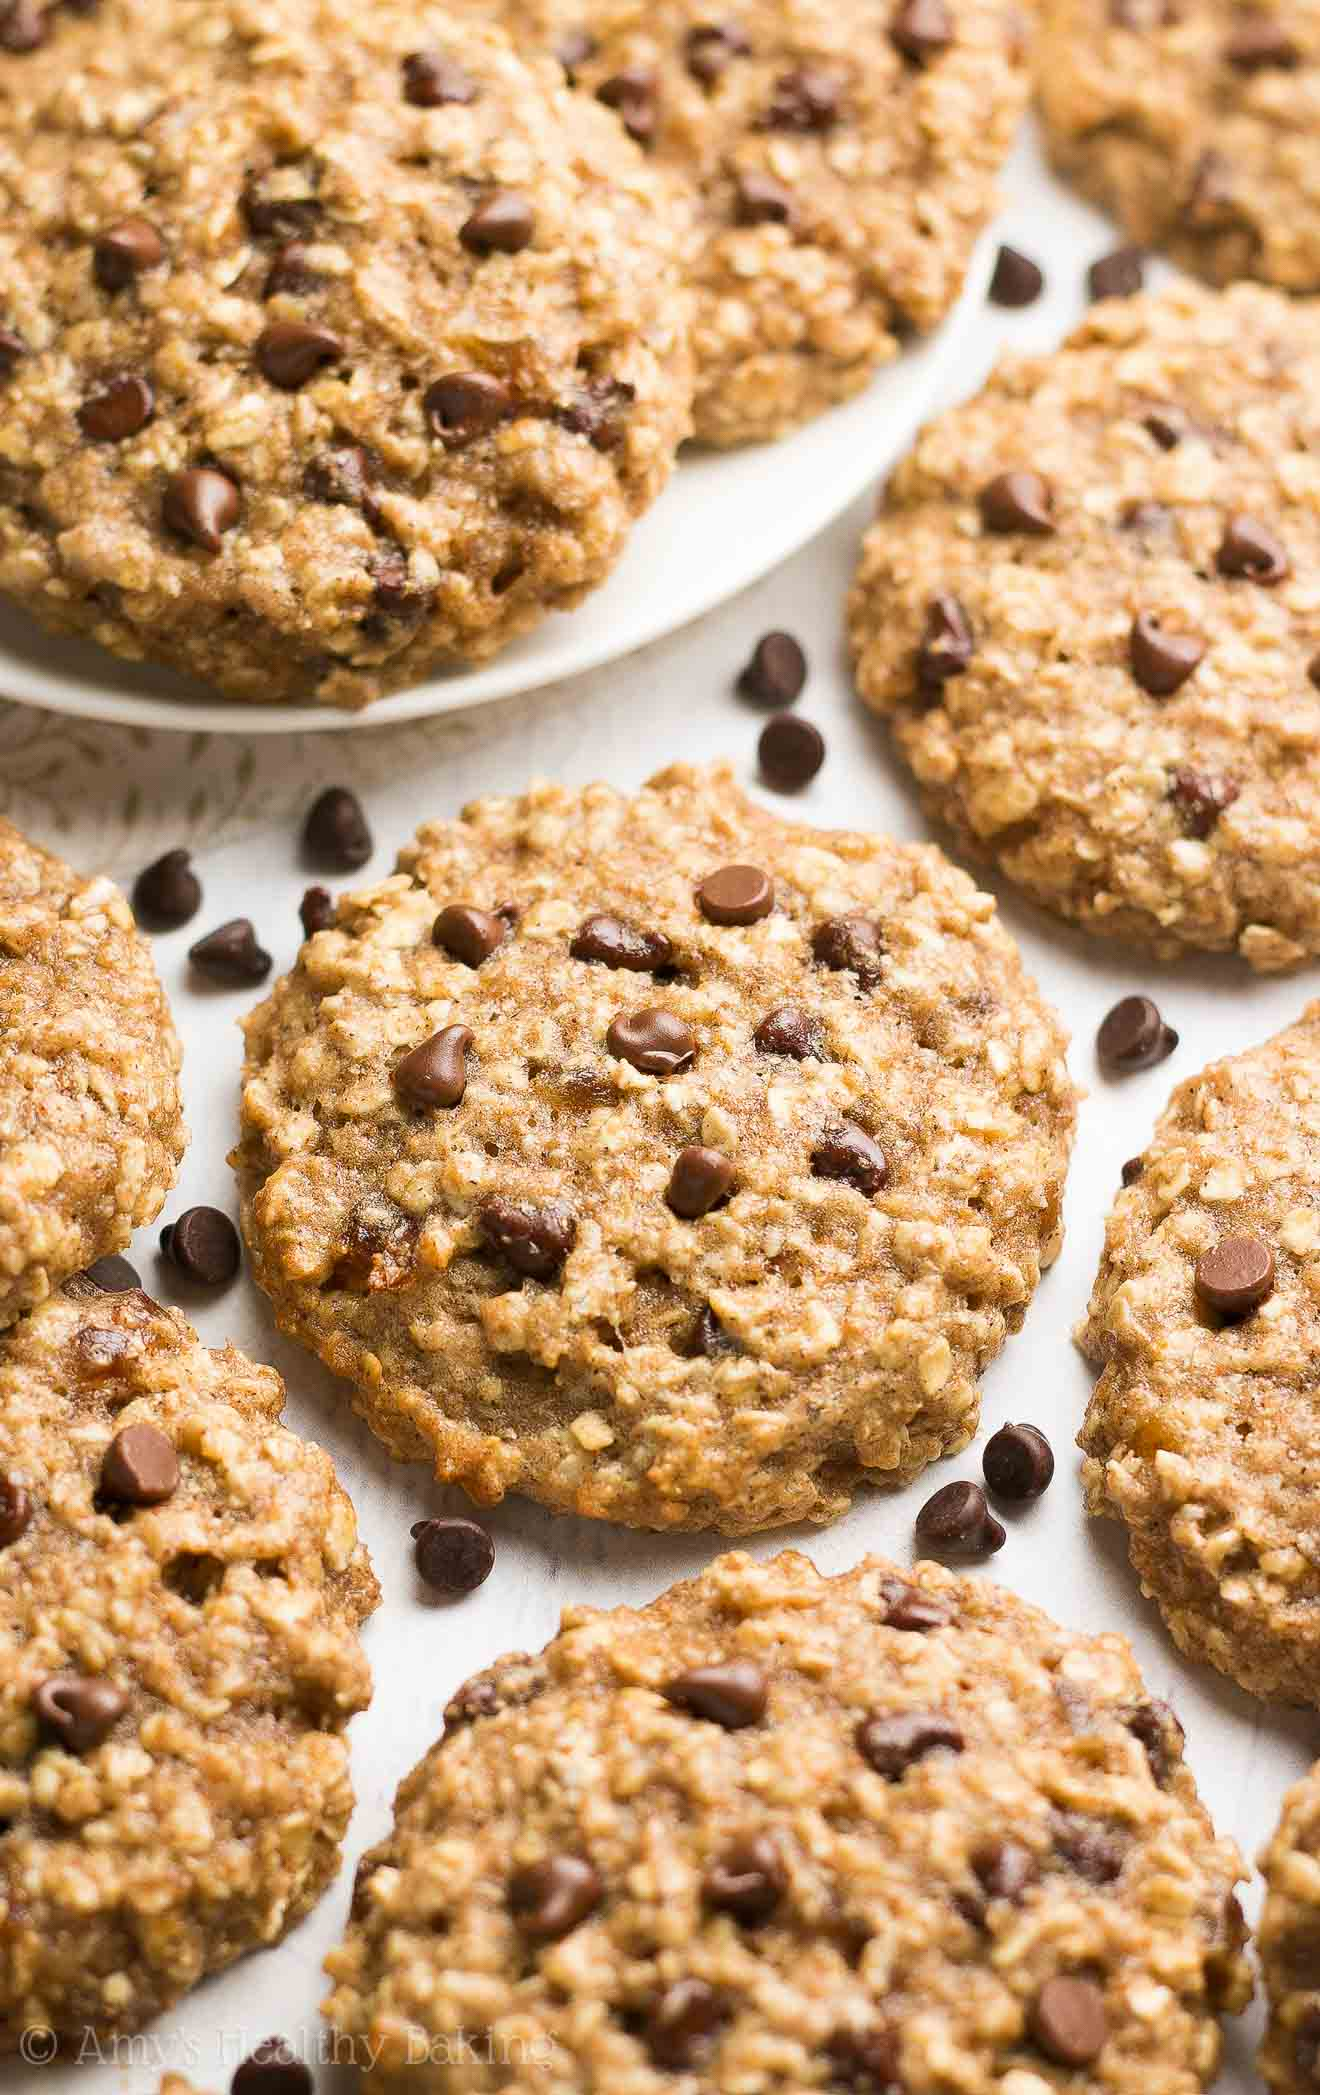 {HEALTHY} Caramel Chocolate Chip Oatmeal Cookies -- supremely chewy & only 99 calories! They taste INCREDIBLE, just like indulgent recipes! I've already memorized the recipe because I make them so often!